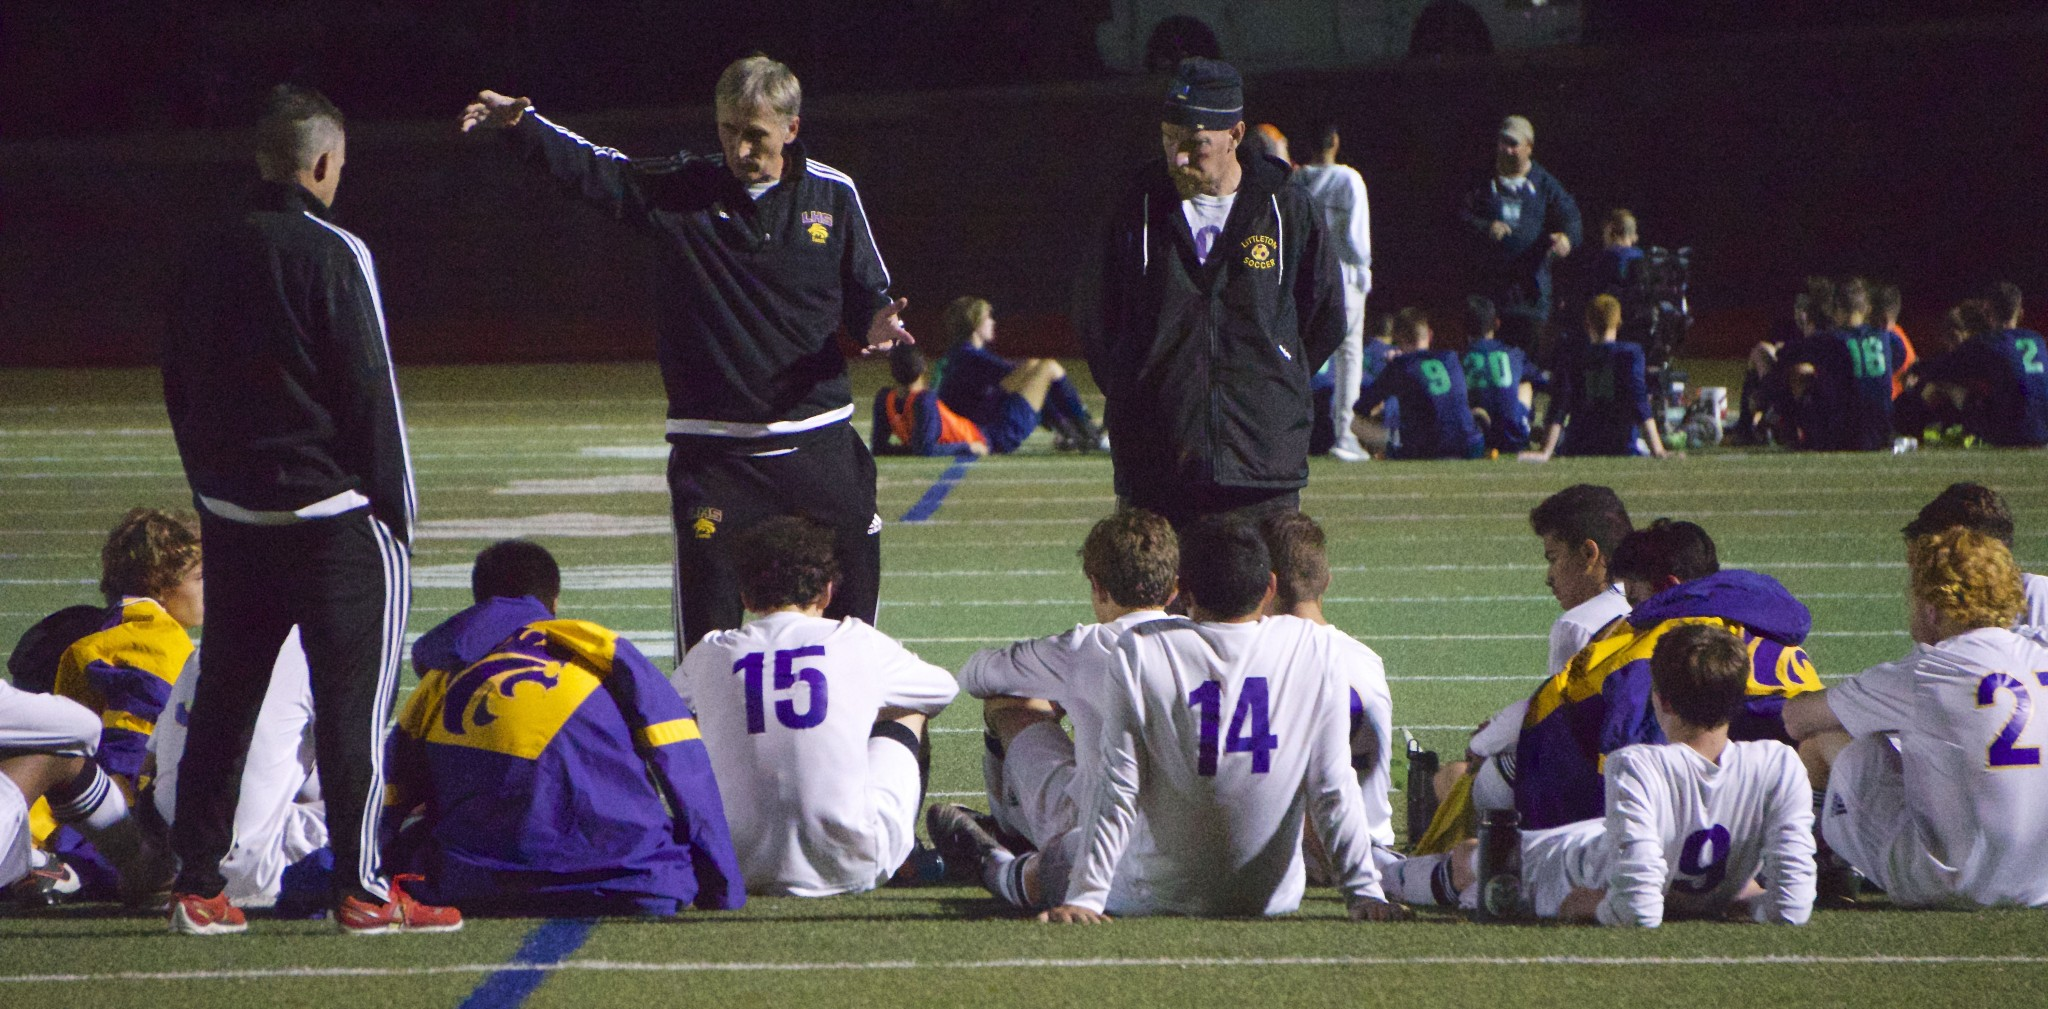 Coach Pedja instructing the team at half-time